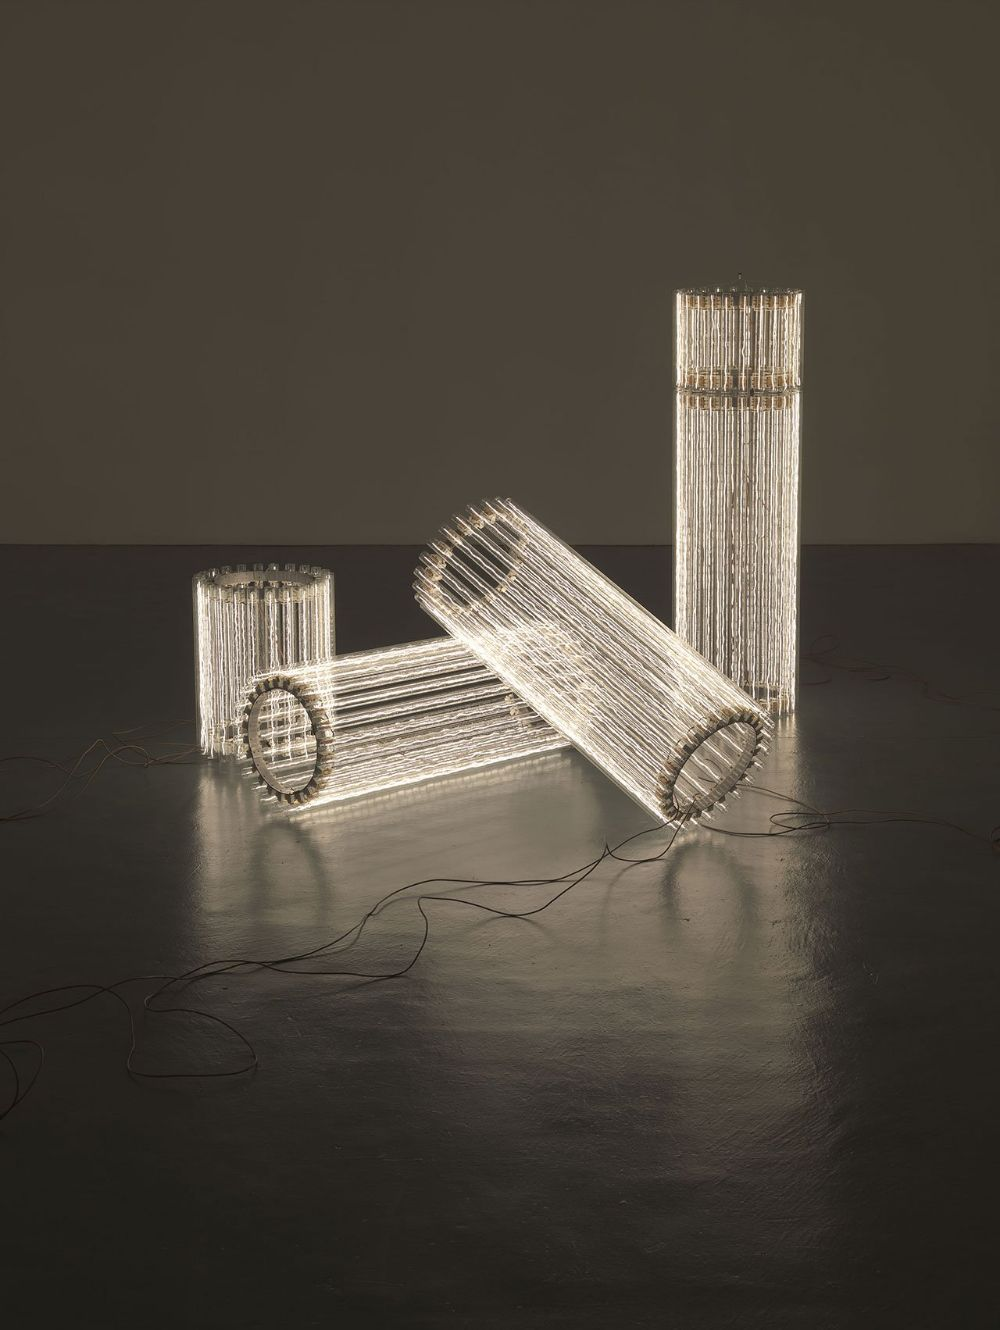 Cerith Wyn Evans, Column (Assemblages) I, 2010 © Cerith Wyn Evans. Courtesy White Cube. Photo: Todd-White Art Photography.